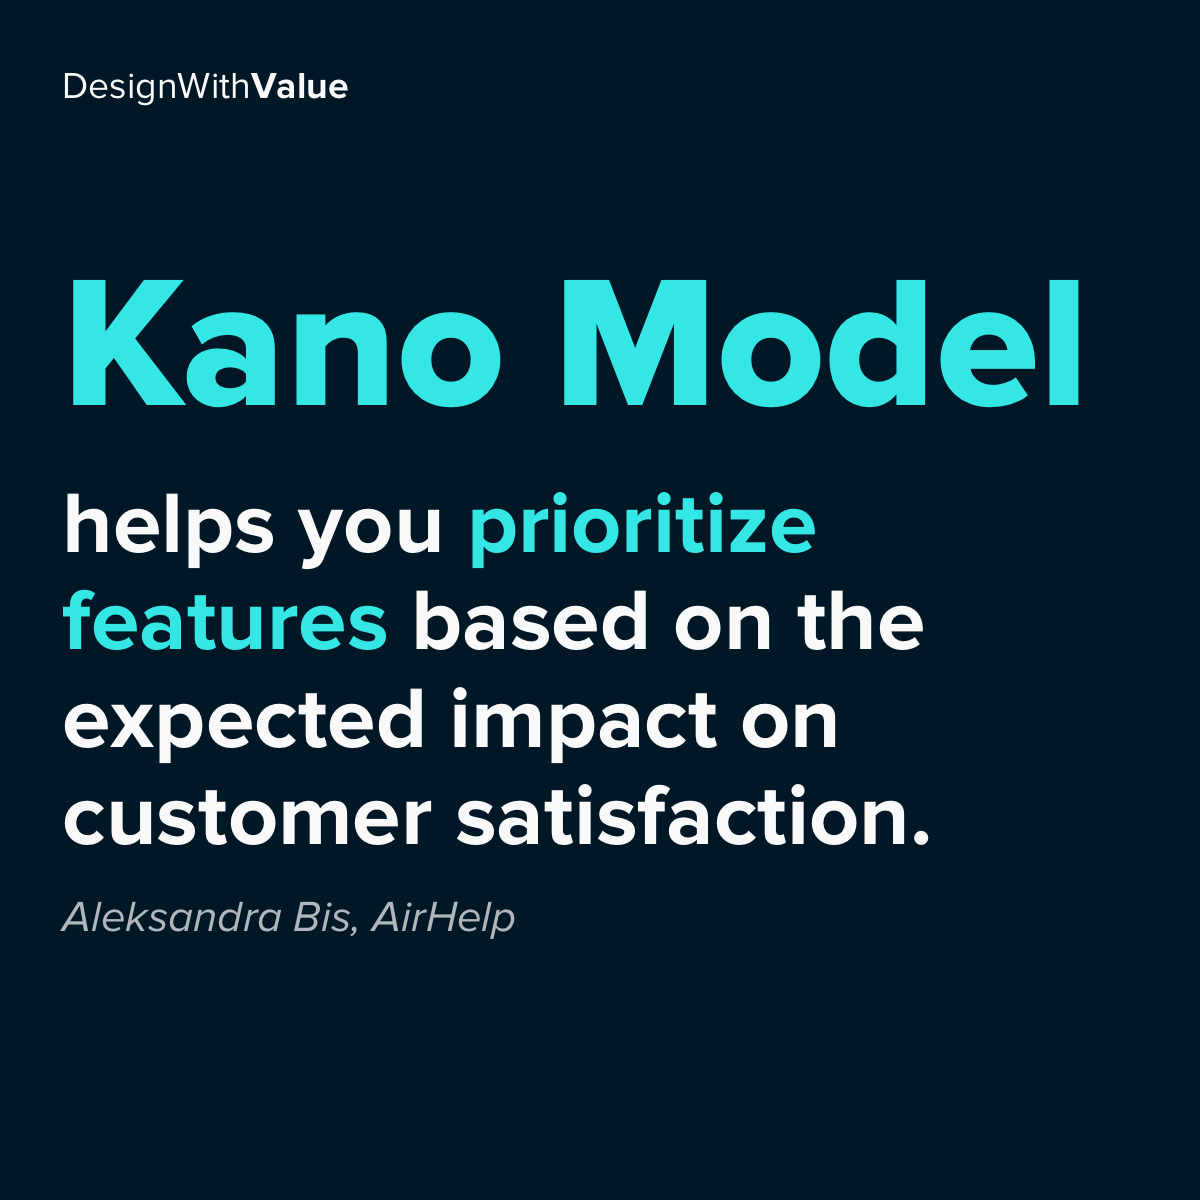 Kano model helps you prioritize features based on the expected impact on customer satisfaction.